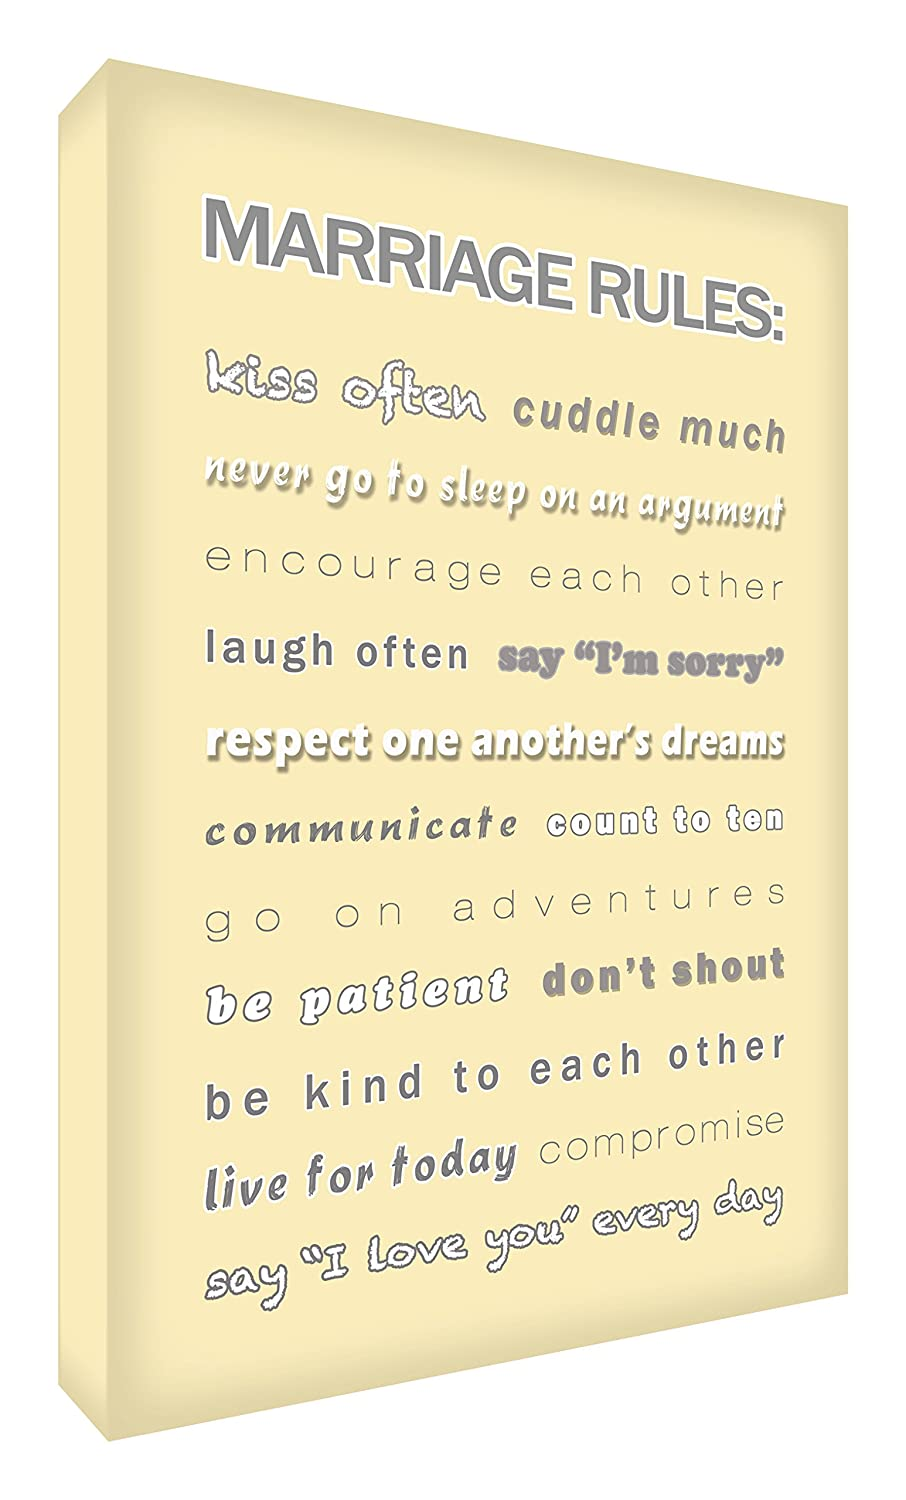 Feel Good Art Marriage Rules Gallery Wrapped Modern Box Canvas with Solid Front Panel (60 x 40 x 4 cm, Cream)